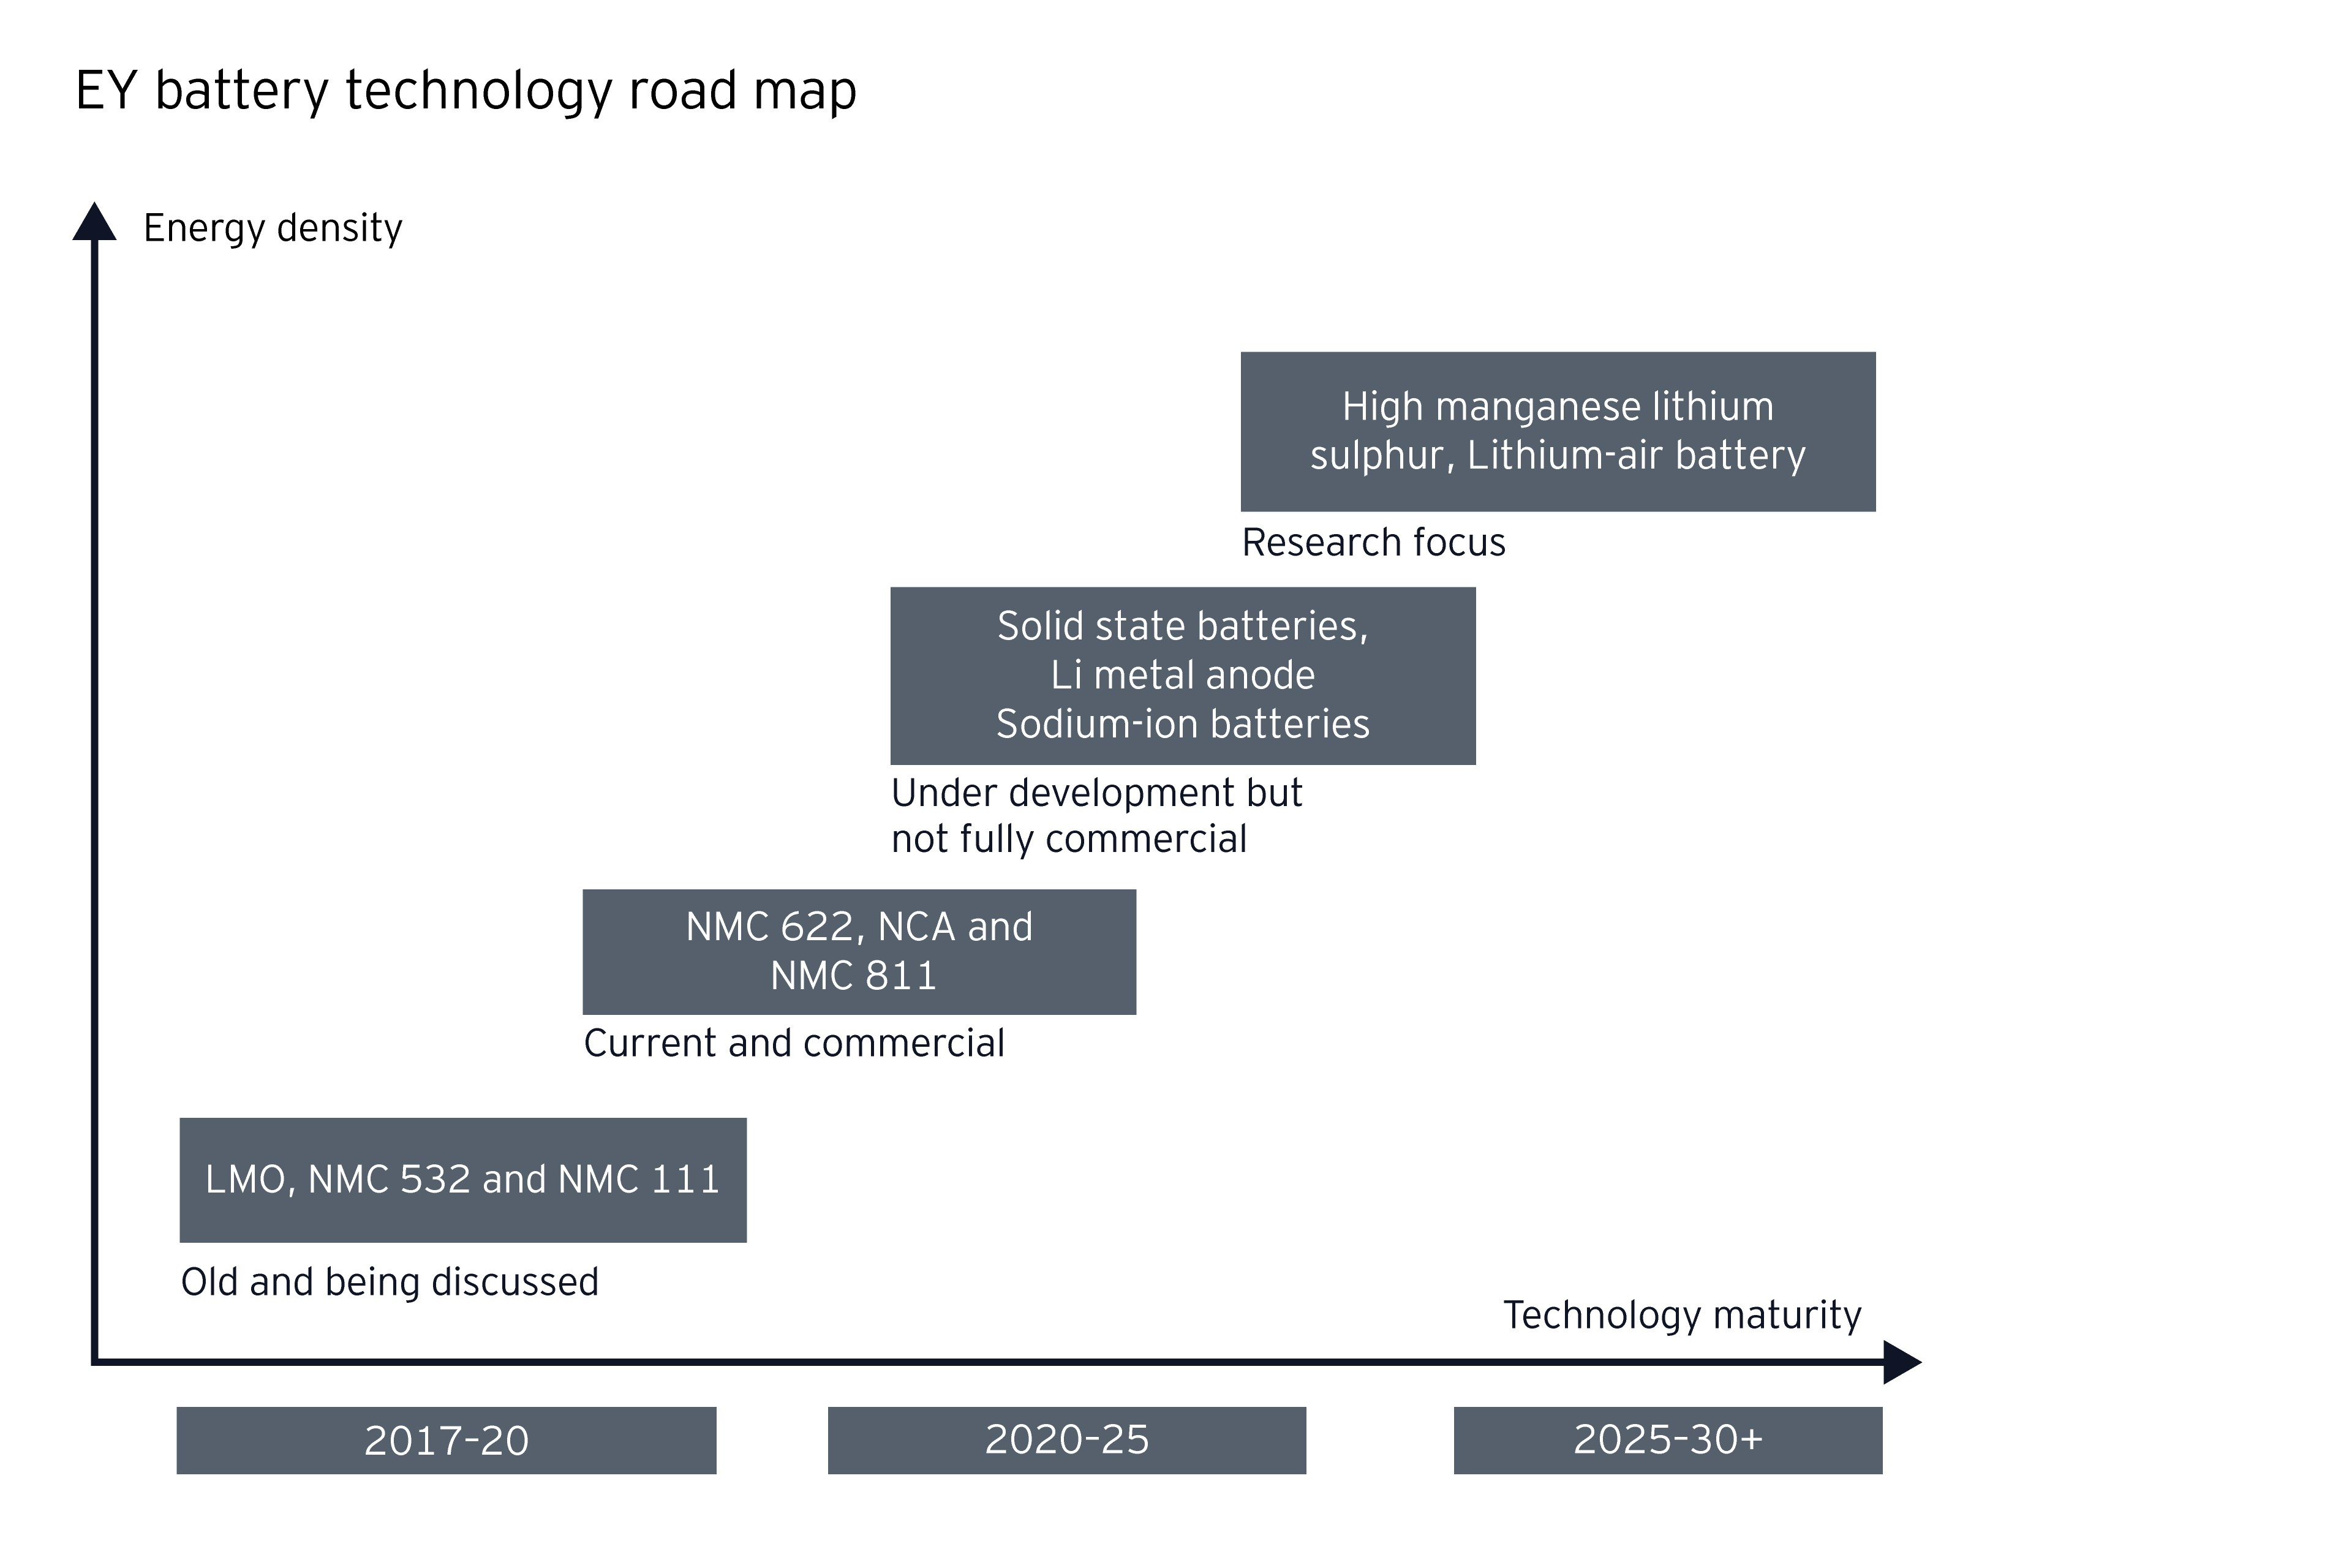 EY battery technology road map